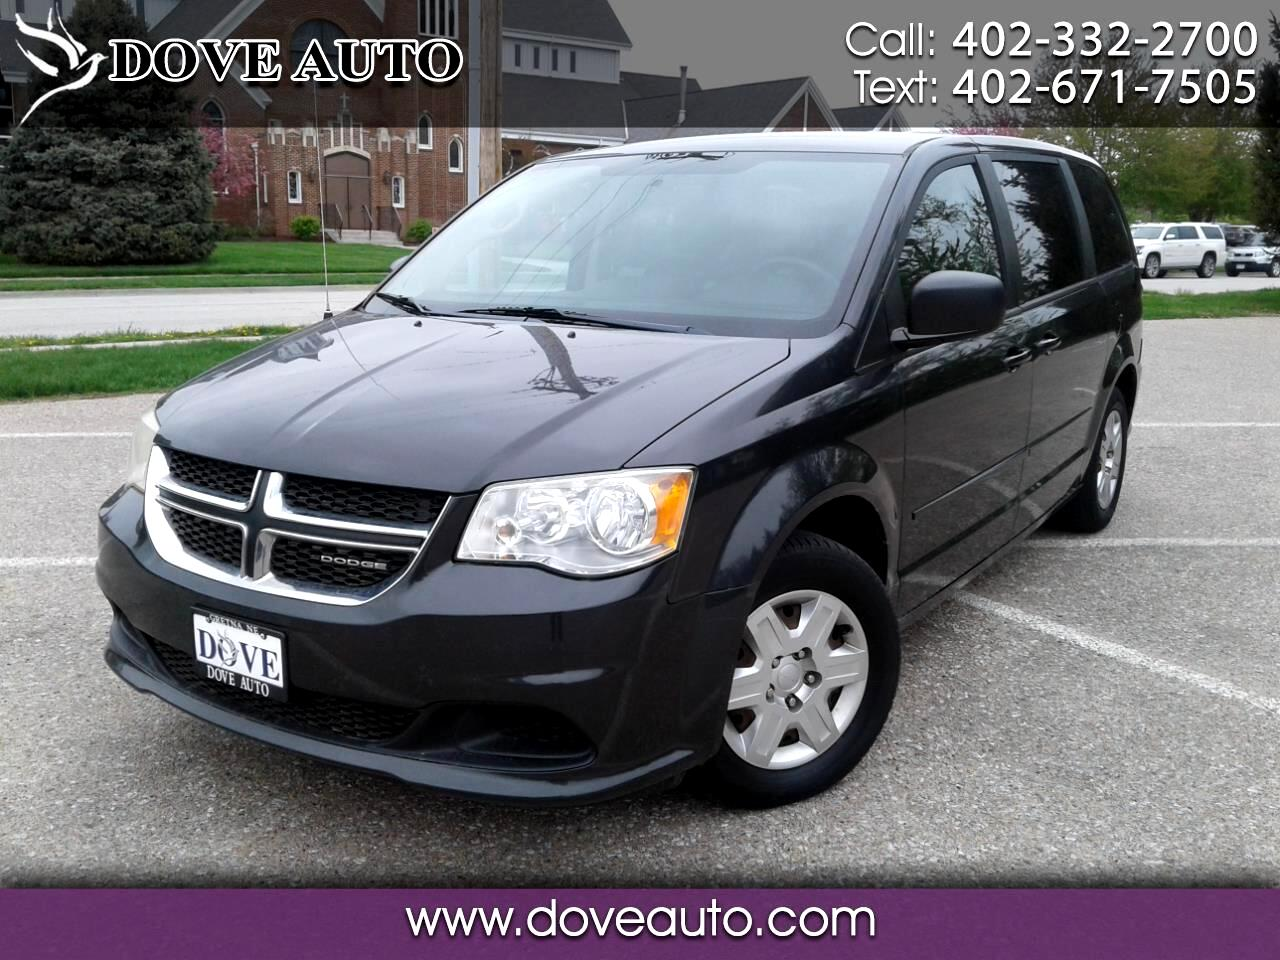 Dodge Grand Caravan 4dr Wgn Express 2011